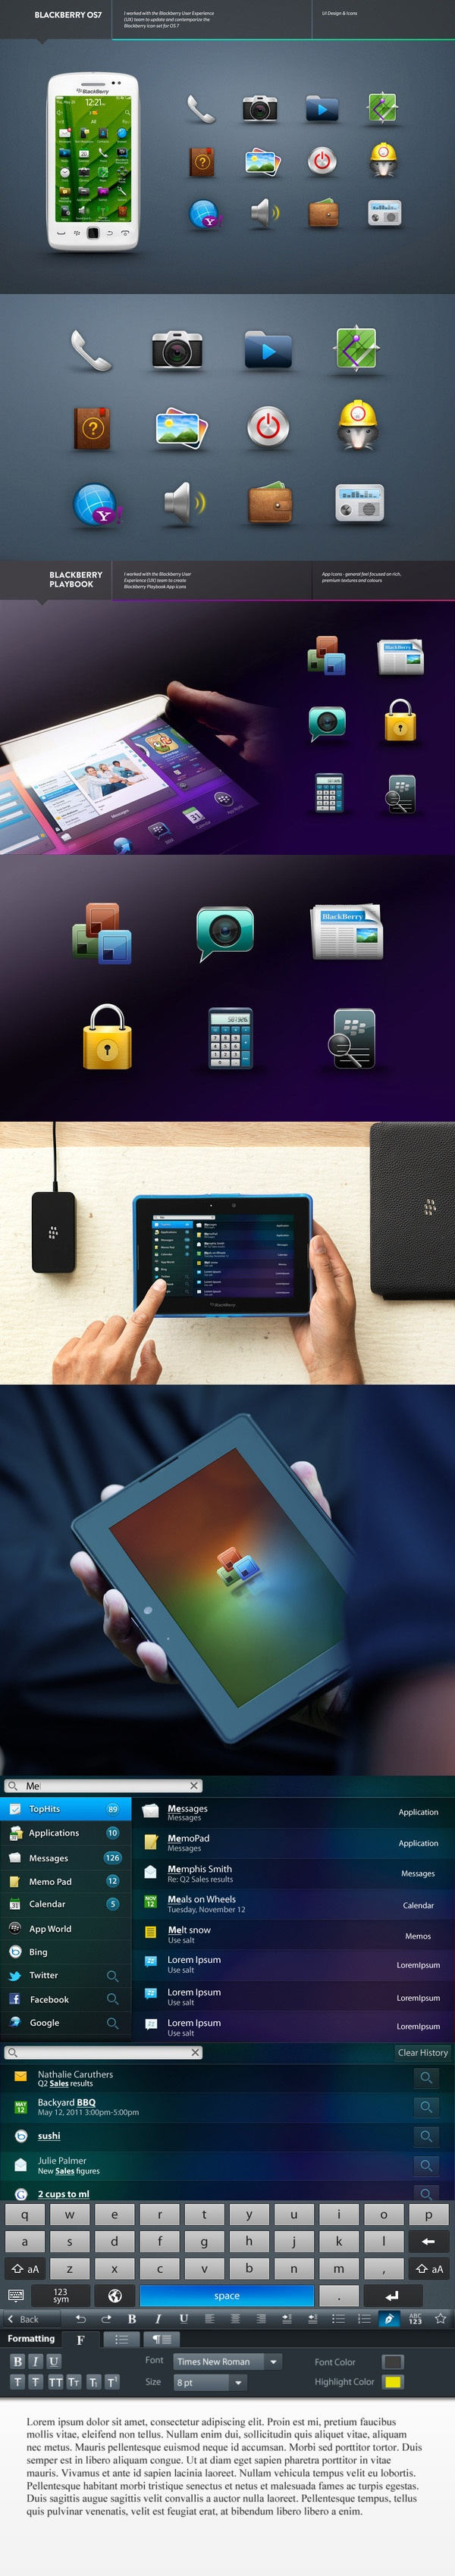 """+ BLACKBERRY by Yana Stepchenko, via Behance *** """" I collaborated with BlackBerry User Interface & Experience to update and contemporize the BlackBerry OS system. This project showcases the evolution and strengthening of visual & interaction systems within RIM`s contemporary BlackBerry portfolio as well as rethinking design and experience of BlackBerry applications and proposing new ideas. """""""